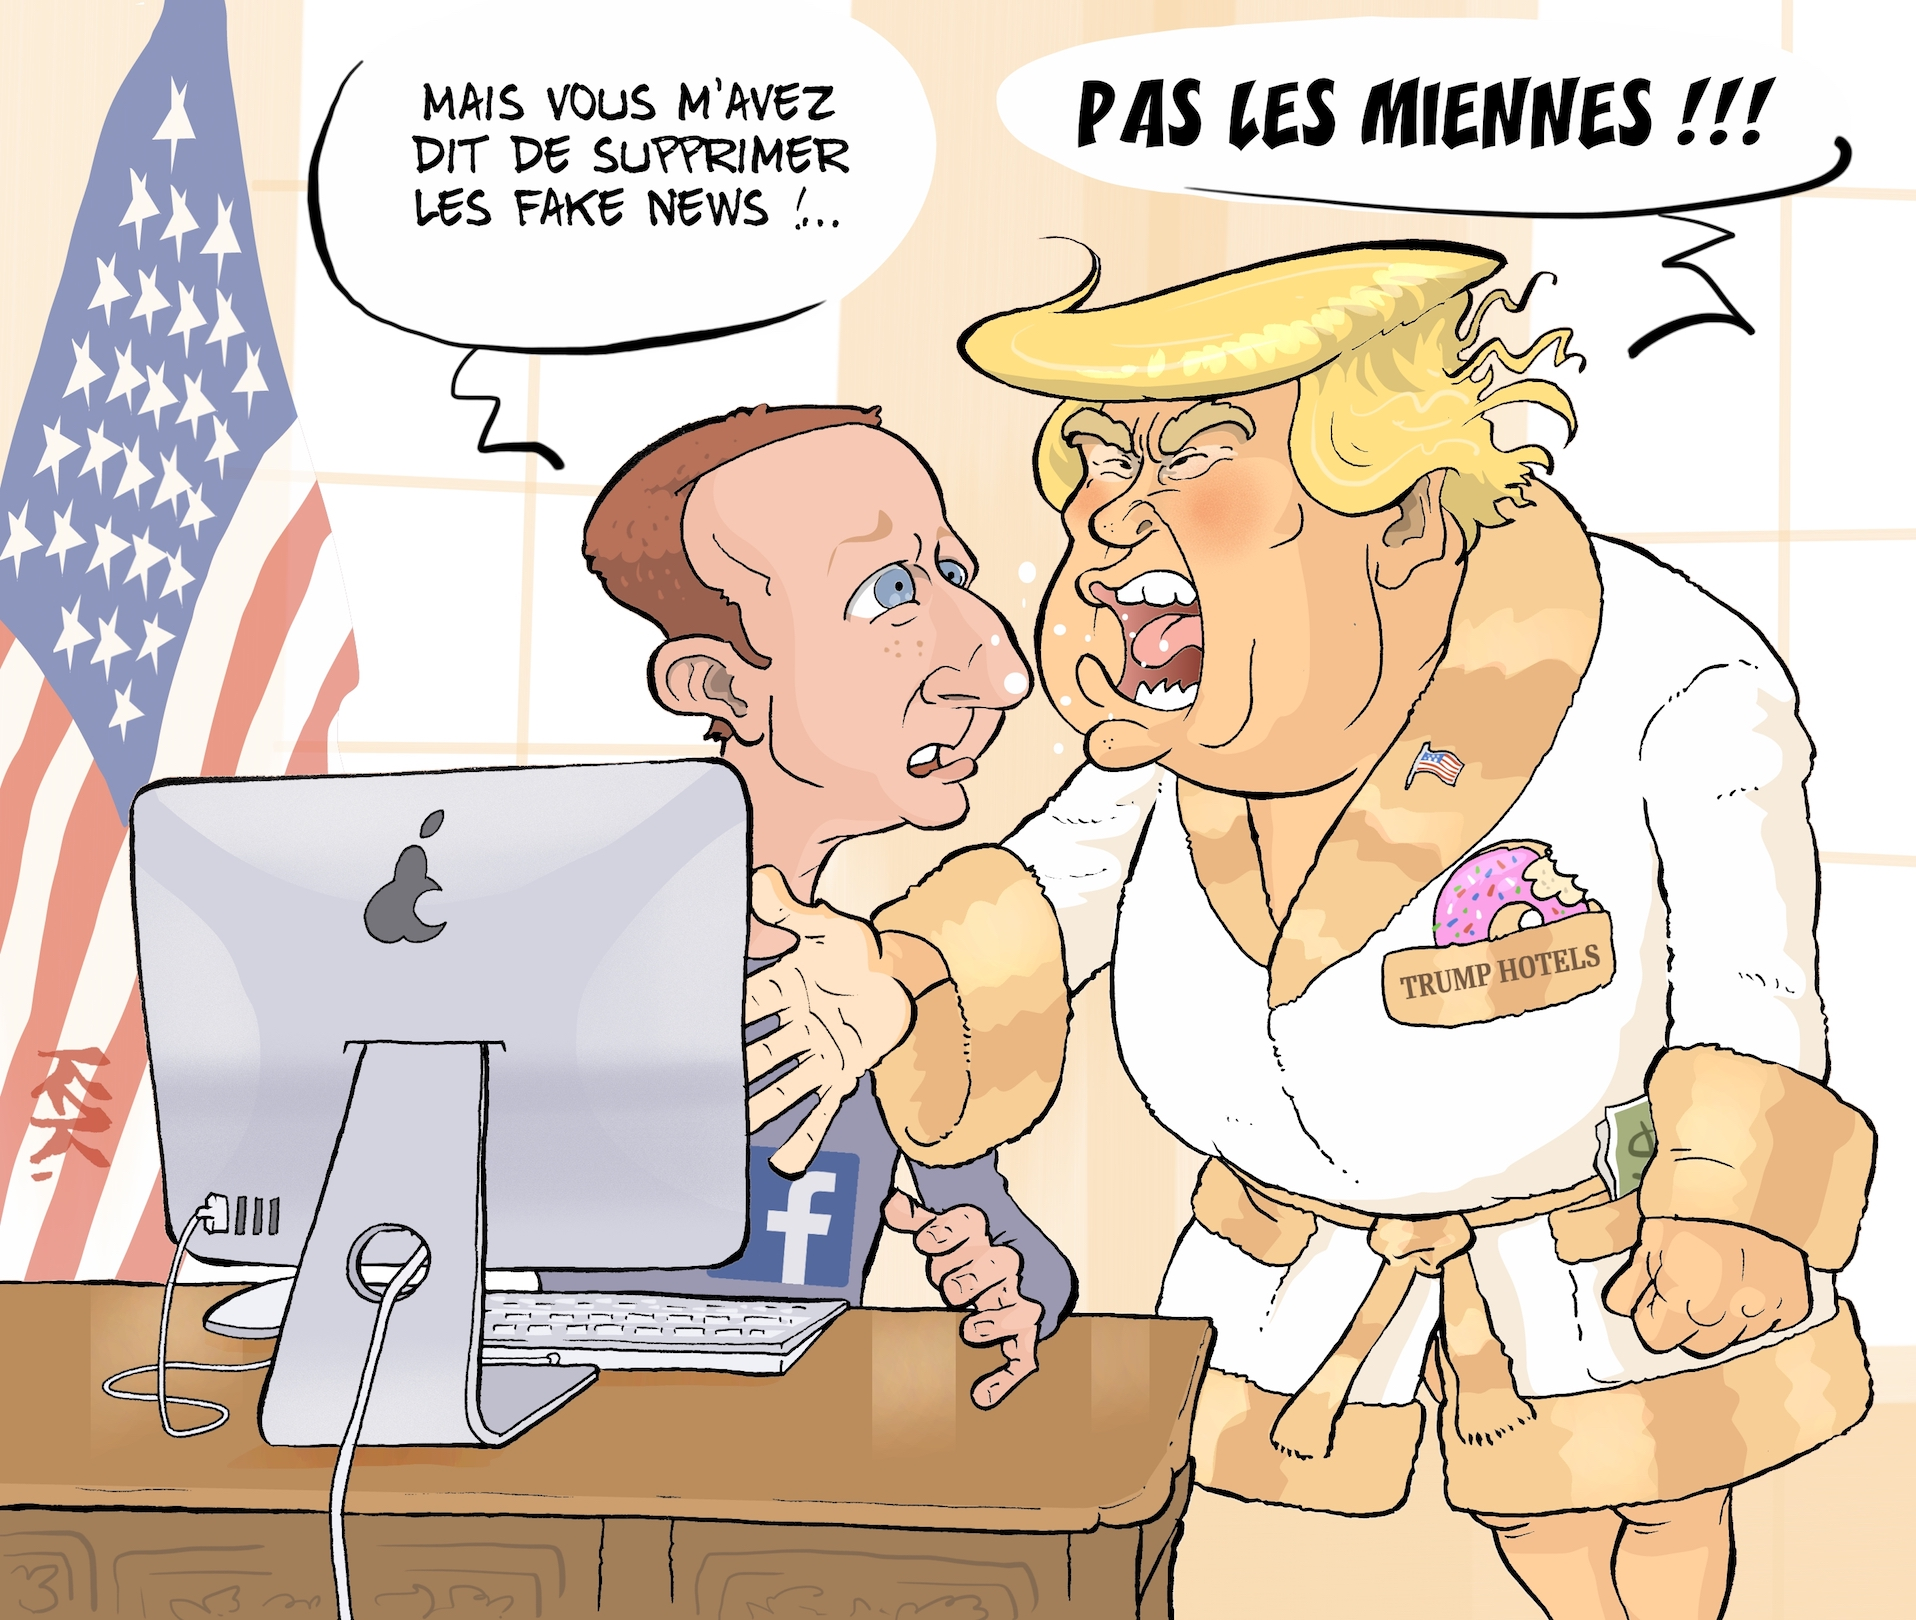 KAK-FRANCE-CARTOONING FOR PEACE